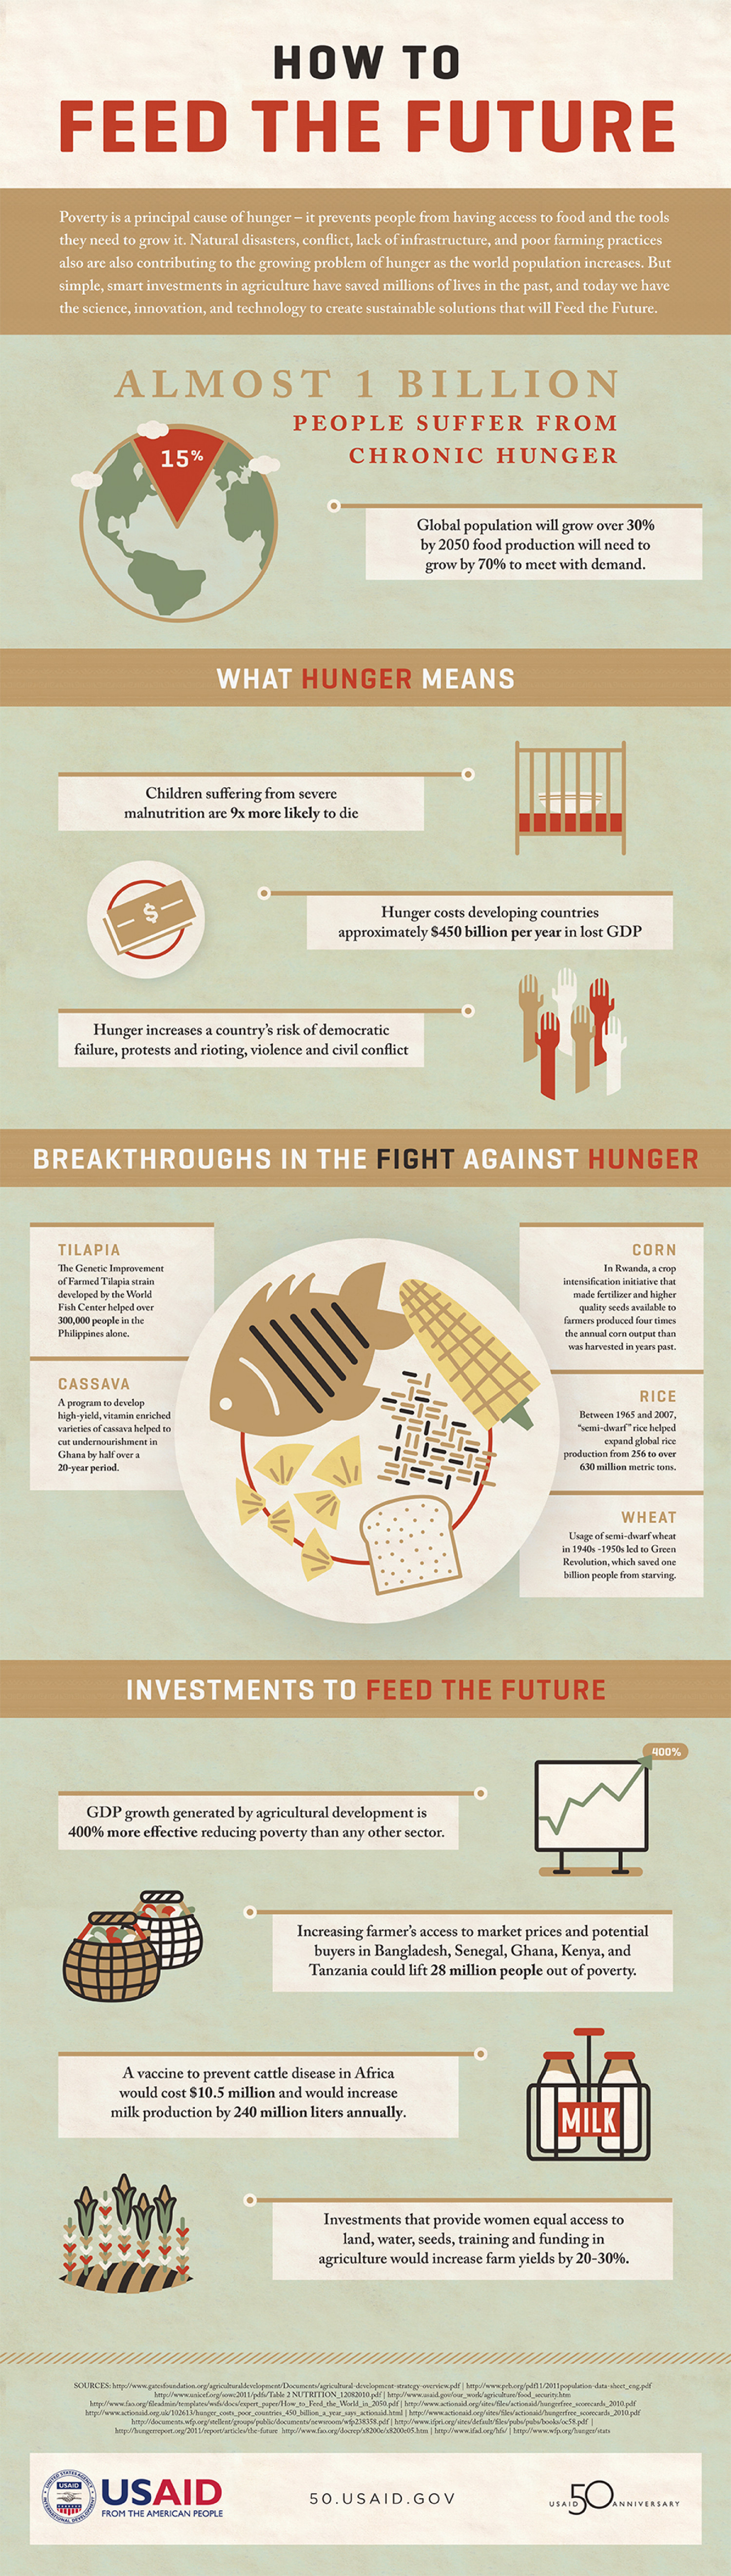 How to Feed the Future Infographic